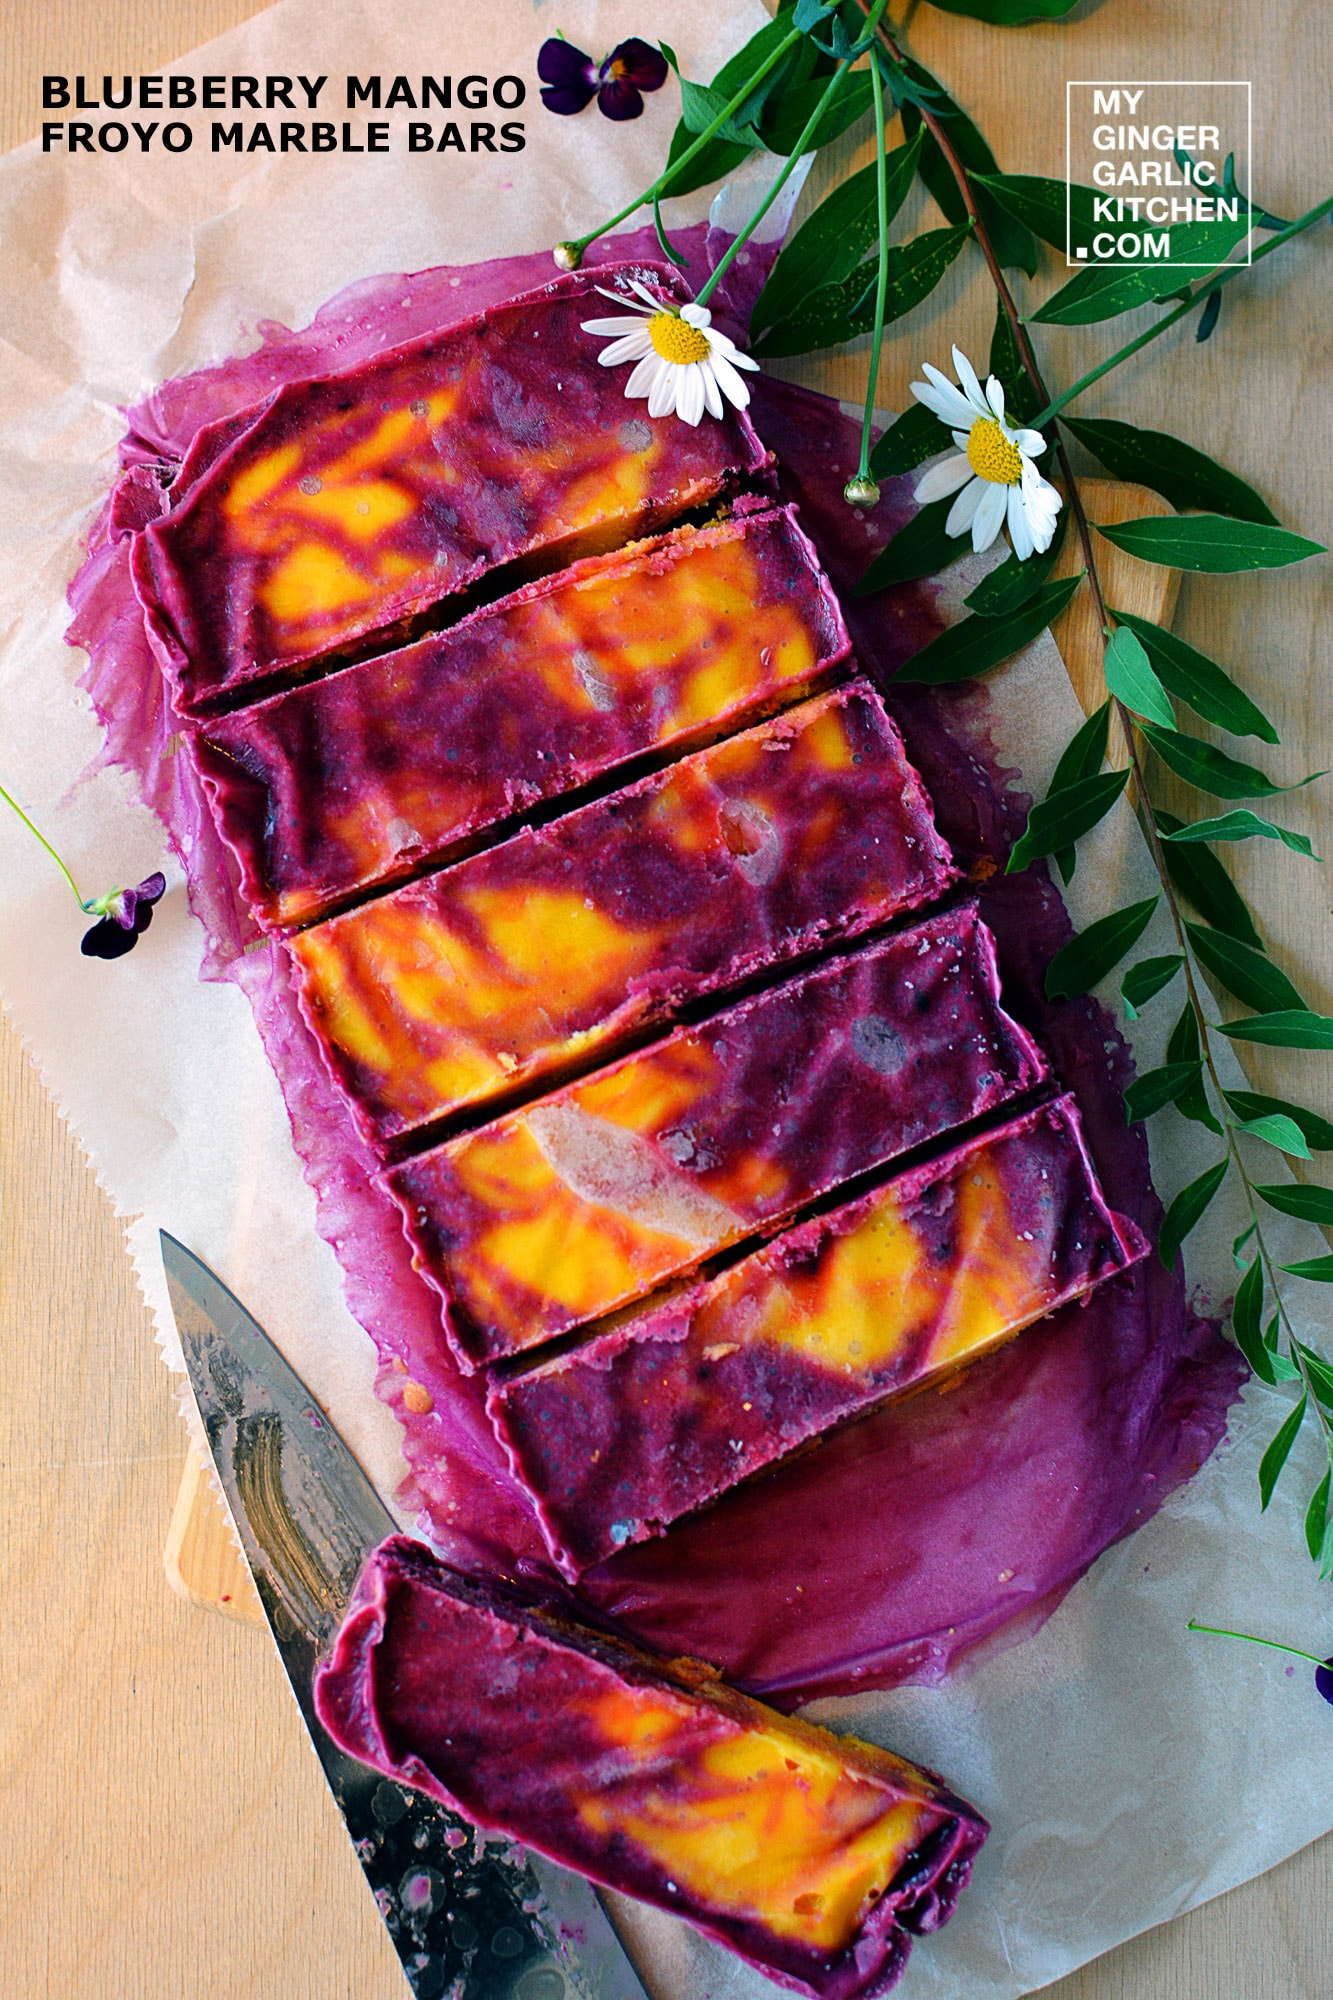 Image of Blueberry Mango Froyo Marble Bars